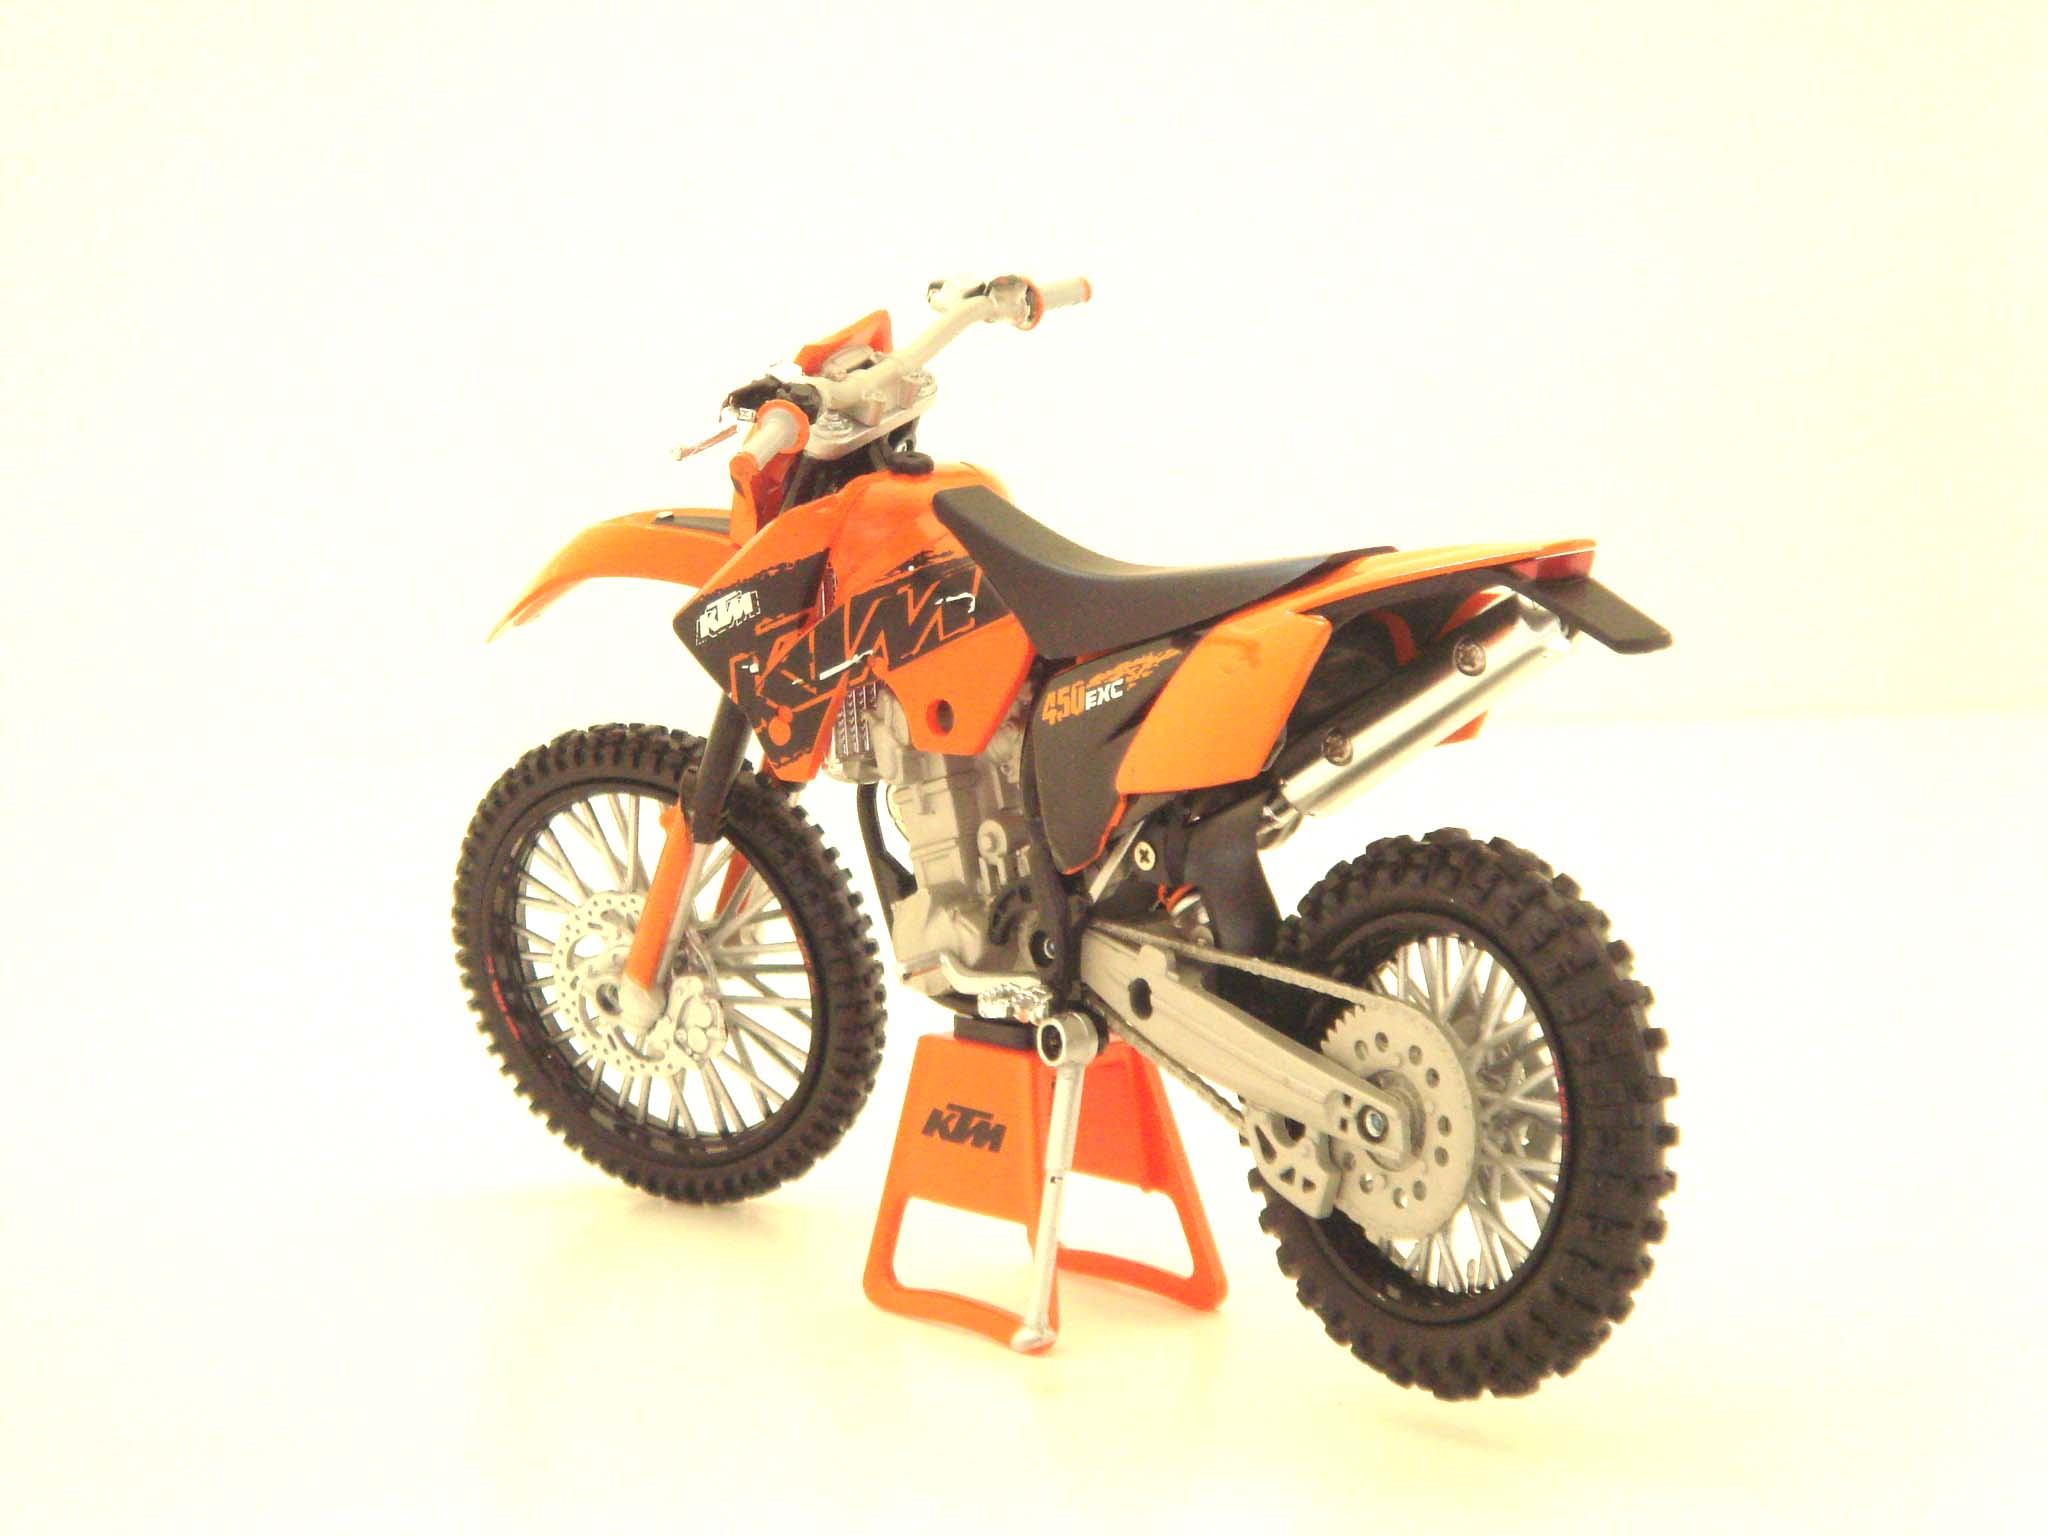 KTM 450 EXC Enduro Racing Diecast Dirt Bike - Thumbnail 1